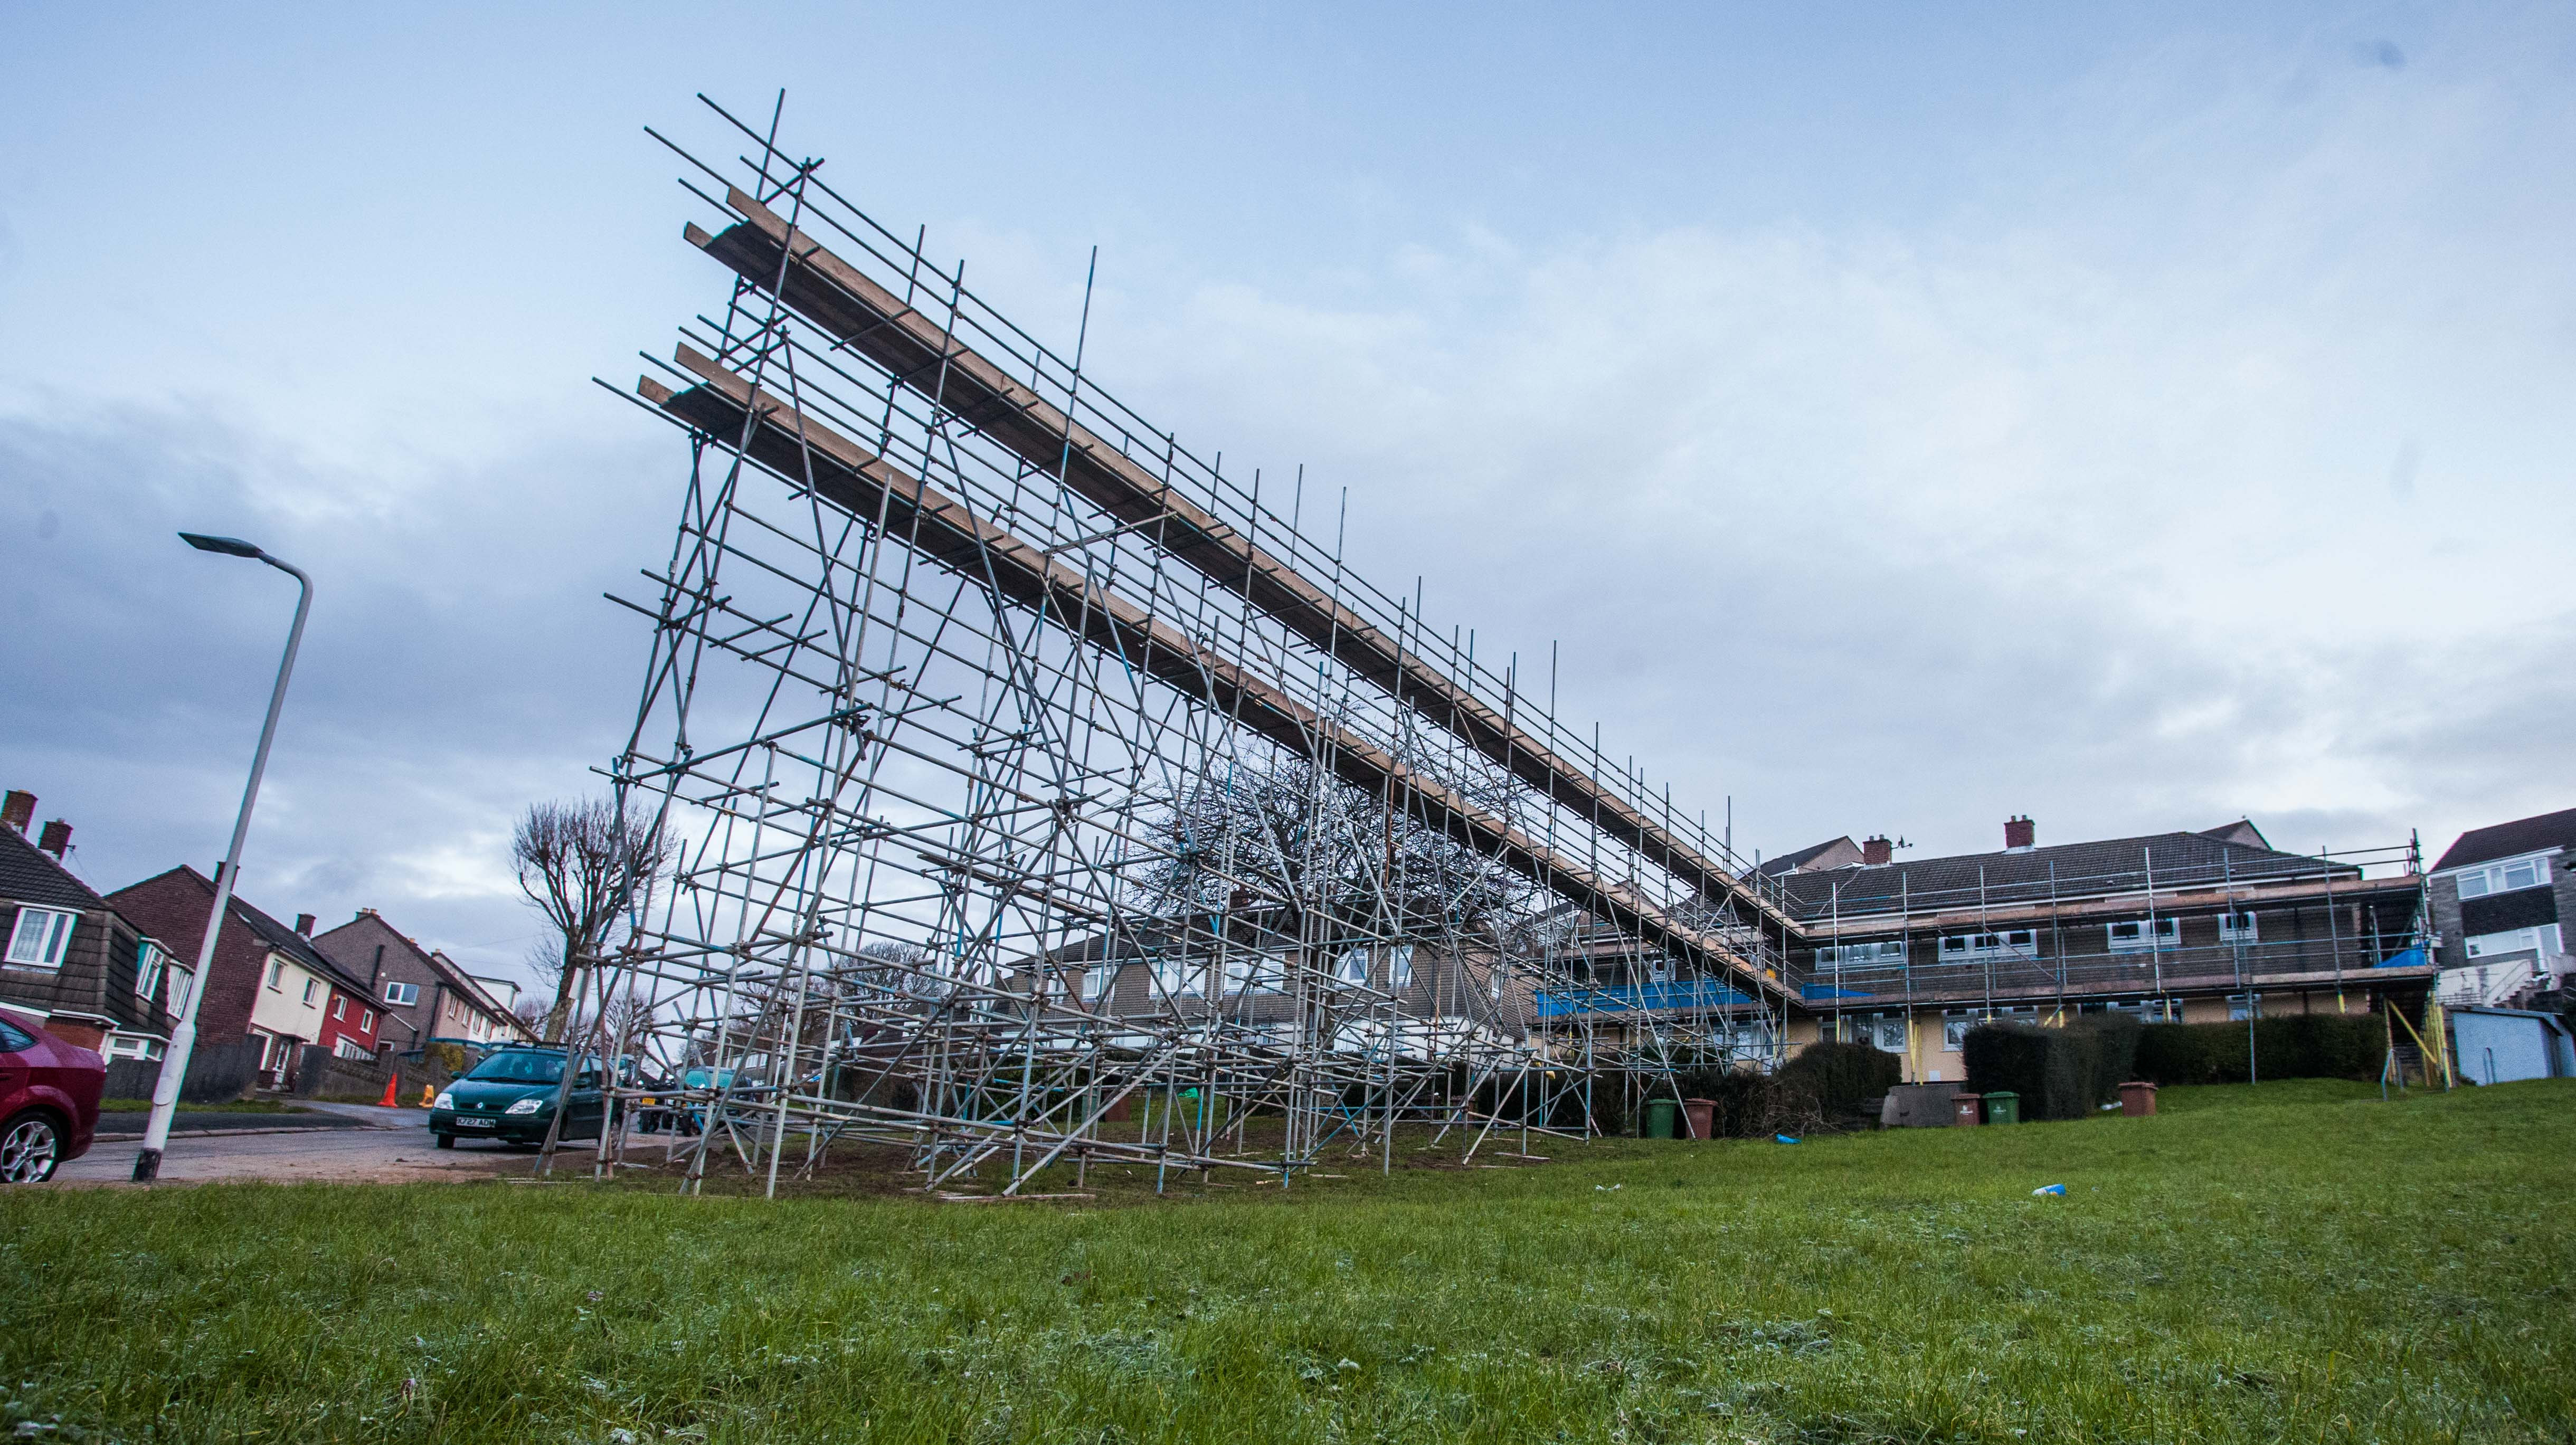 30 Foot Scaffolding : Residents fury after builders erect ft high scaffolding